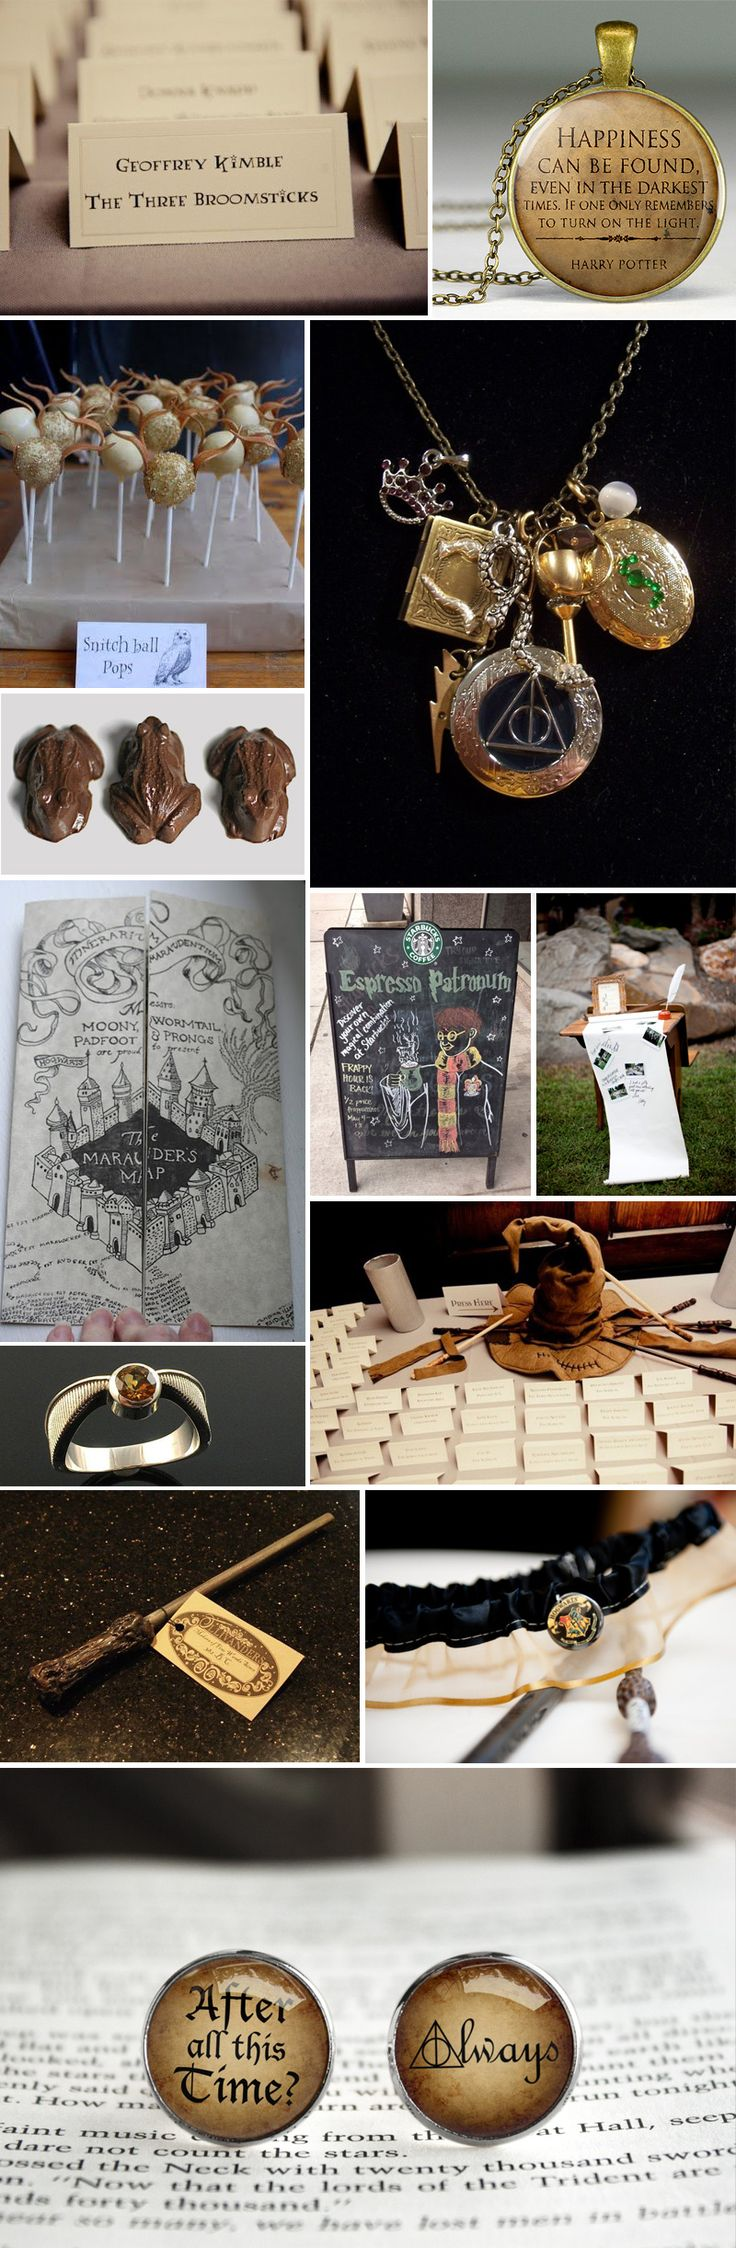 harry potter wedding rings harry potter wedding bands 25 Best Ideas about Harry Potter Wedding Rings on Pinterest Gold diamond rings Harry potter engagement ring and Blake lively ring